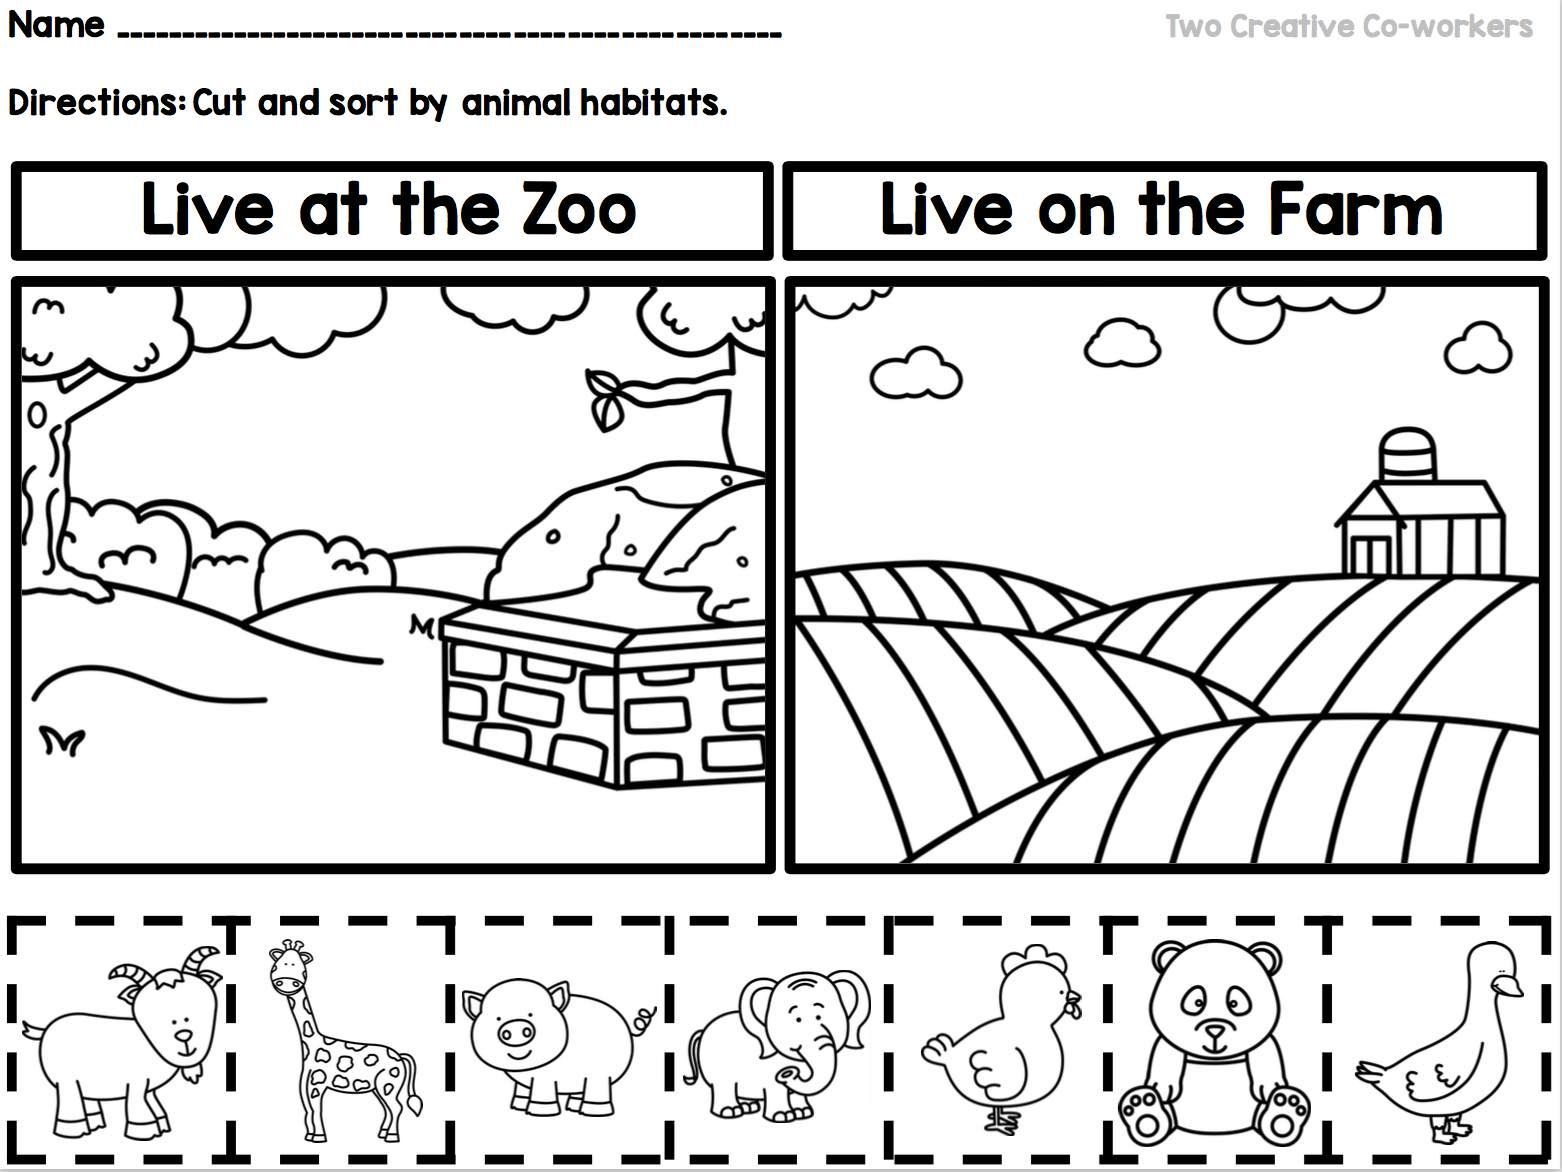 worksheet Habitats Of Animals For Kids Worksheet kindergarten animal habitats printable book sorting worksheets posters